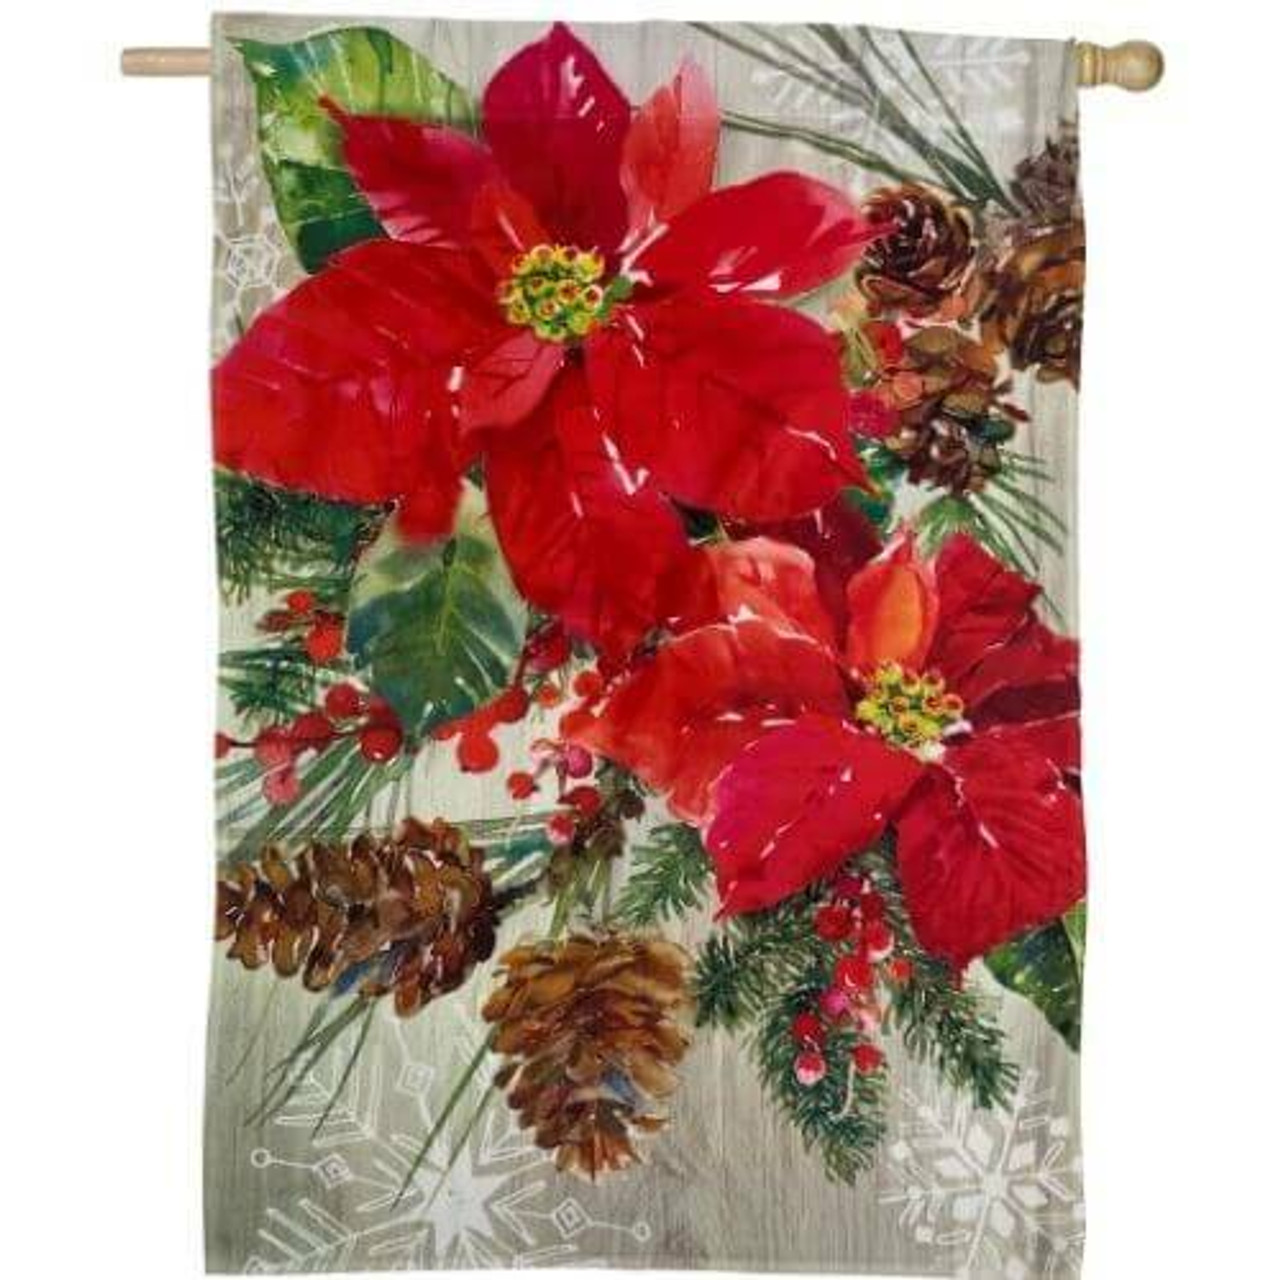 Poinsettia with pine cones house flag on beige background with white snow flakes